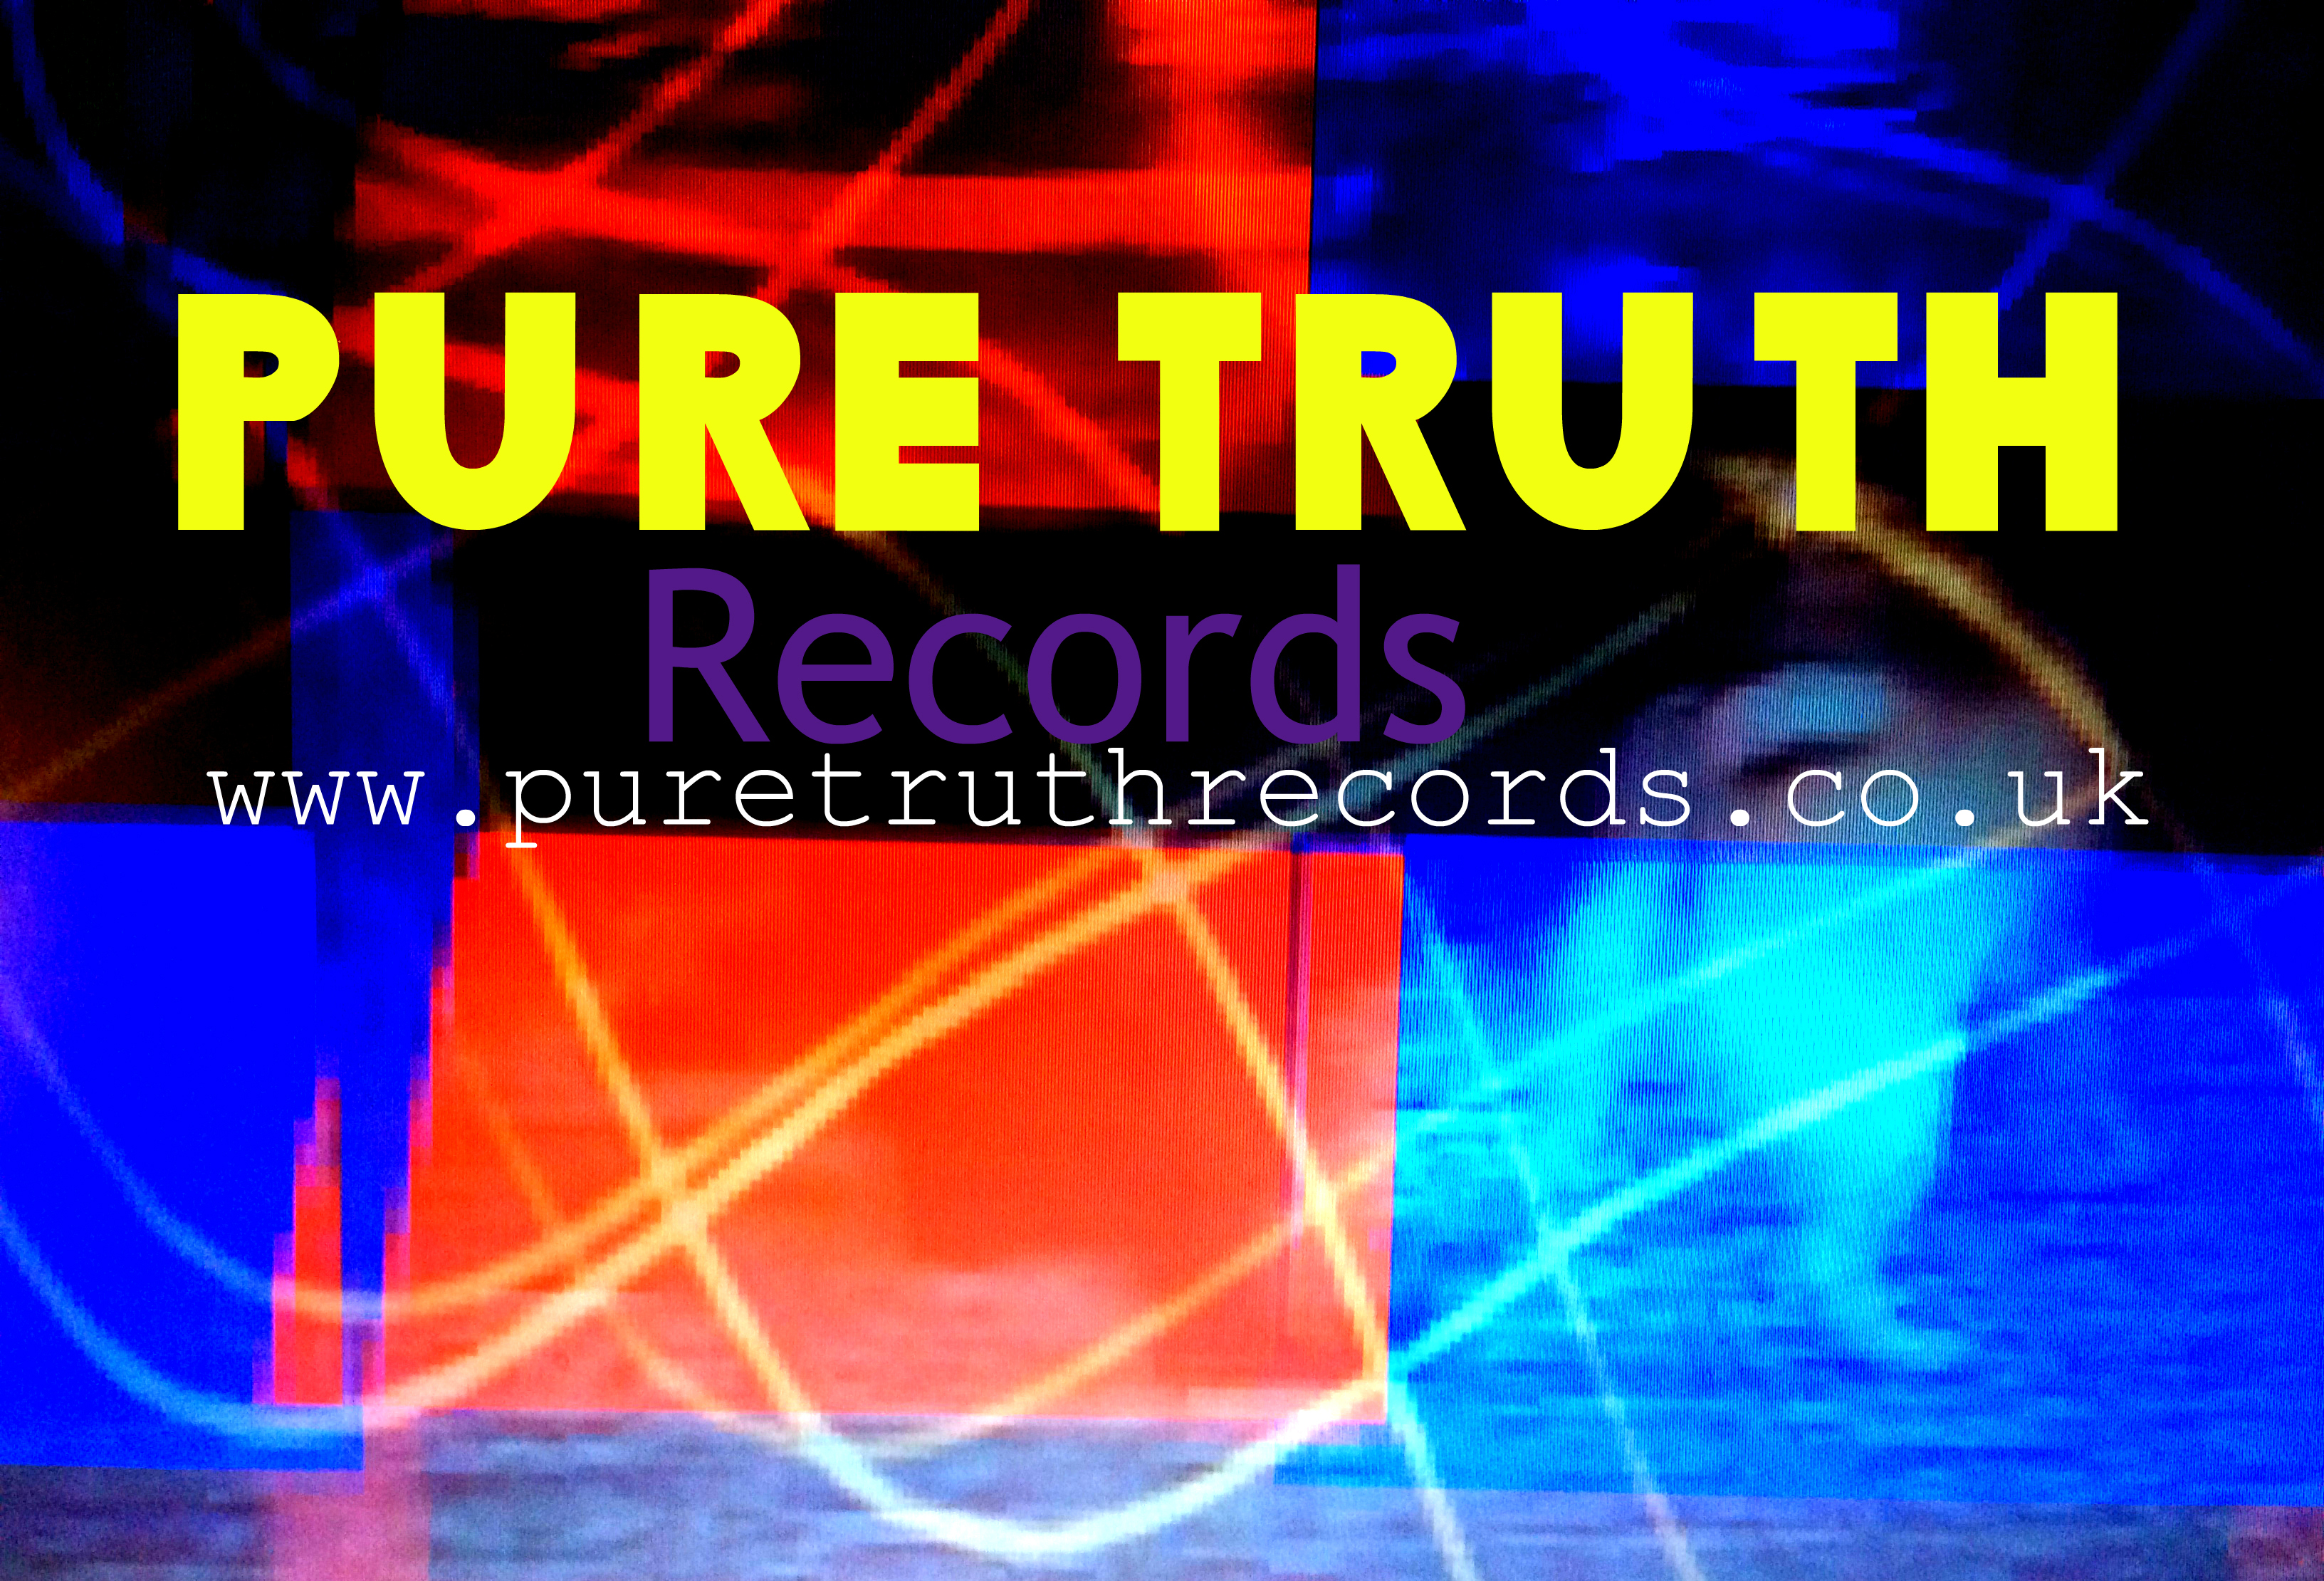 Pure Truth Records